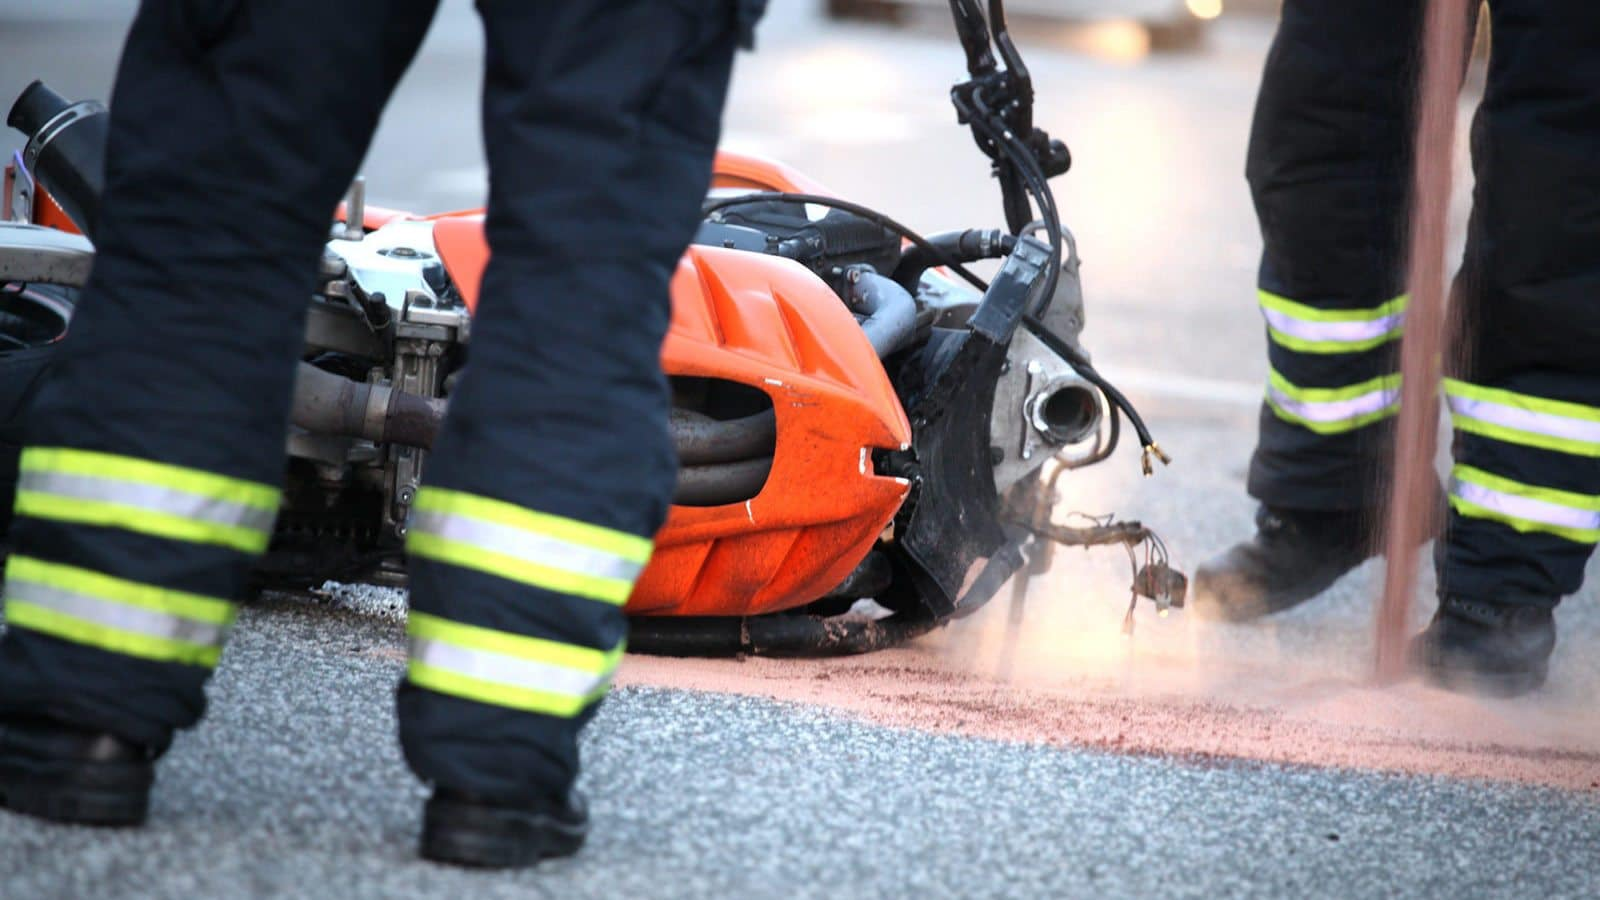 Motorcycle Accident Lawyers Dallas TX   Thompson Law   1-800